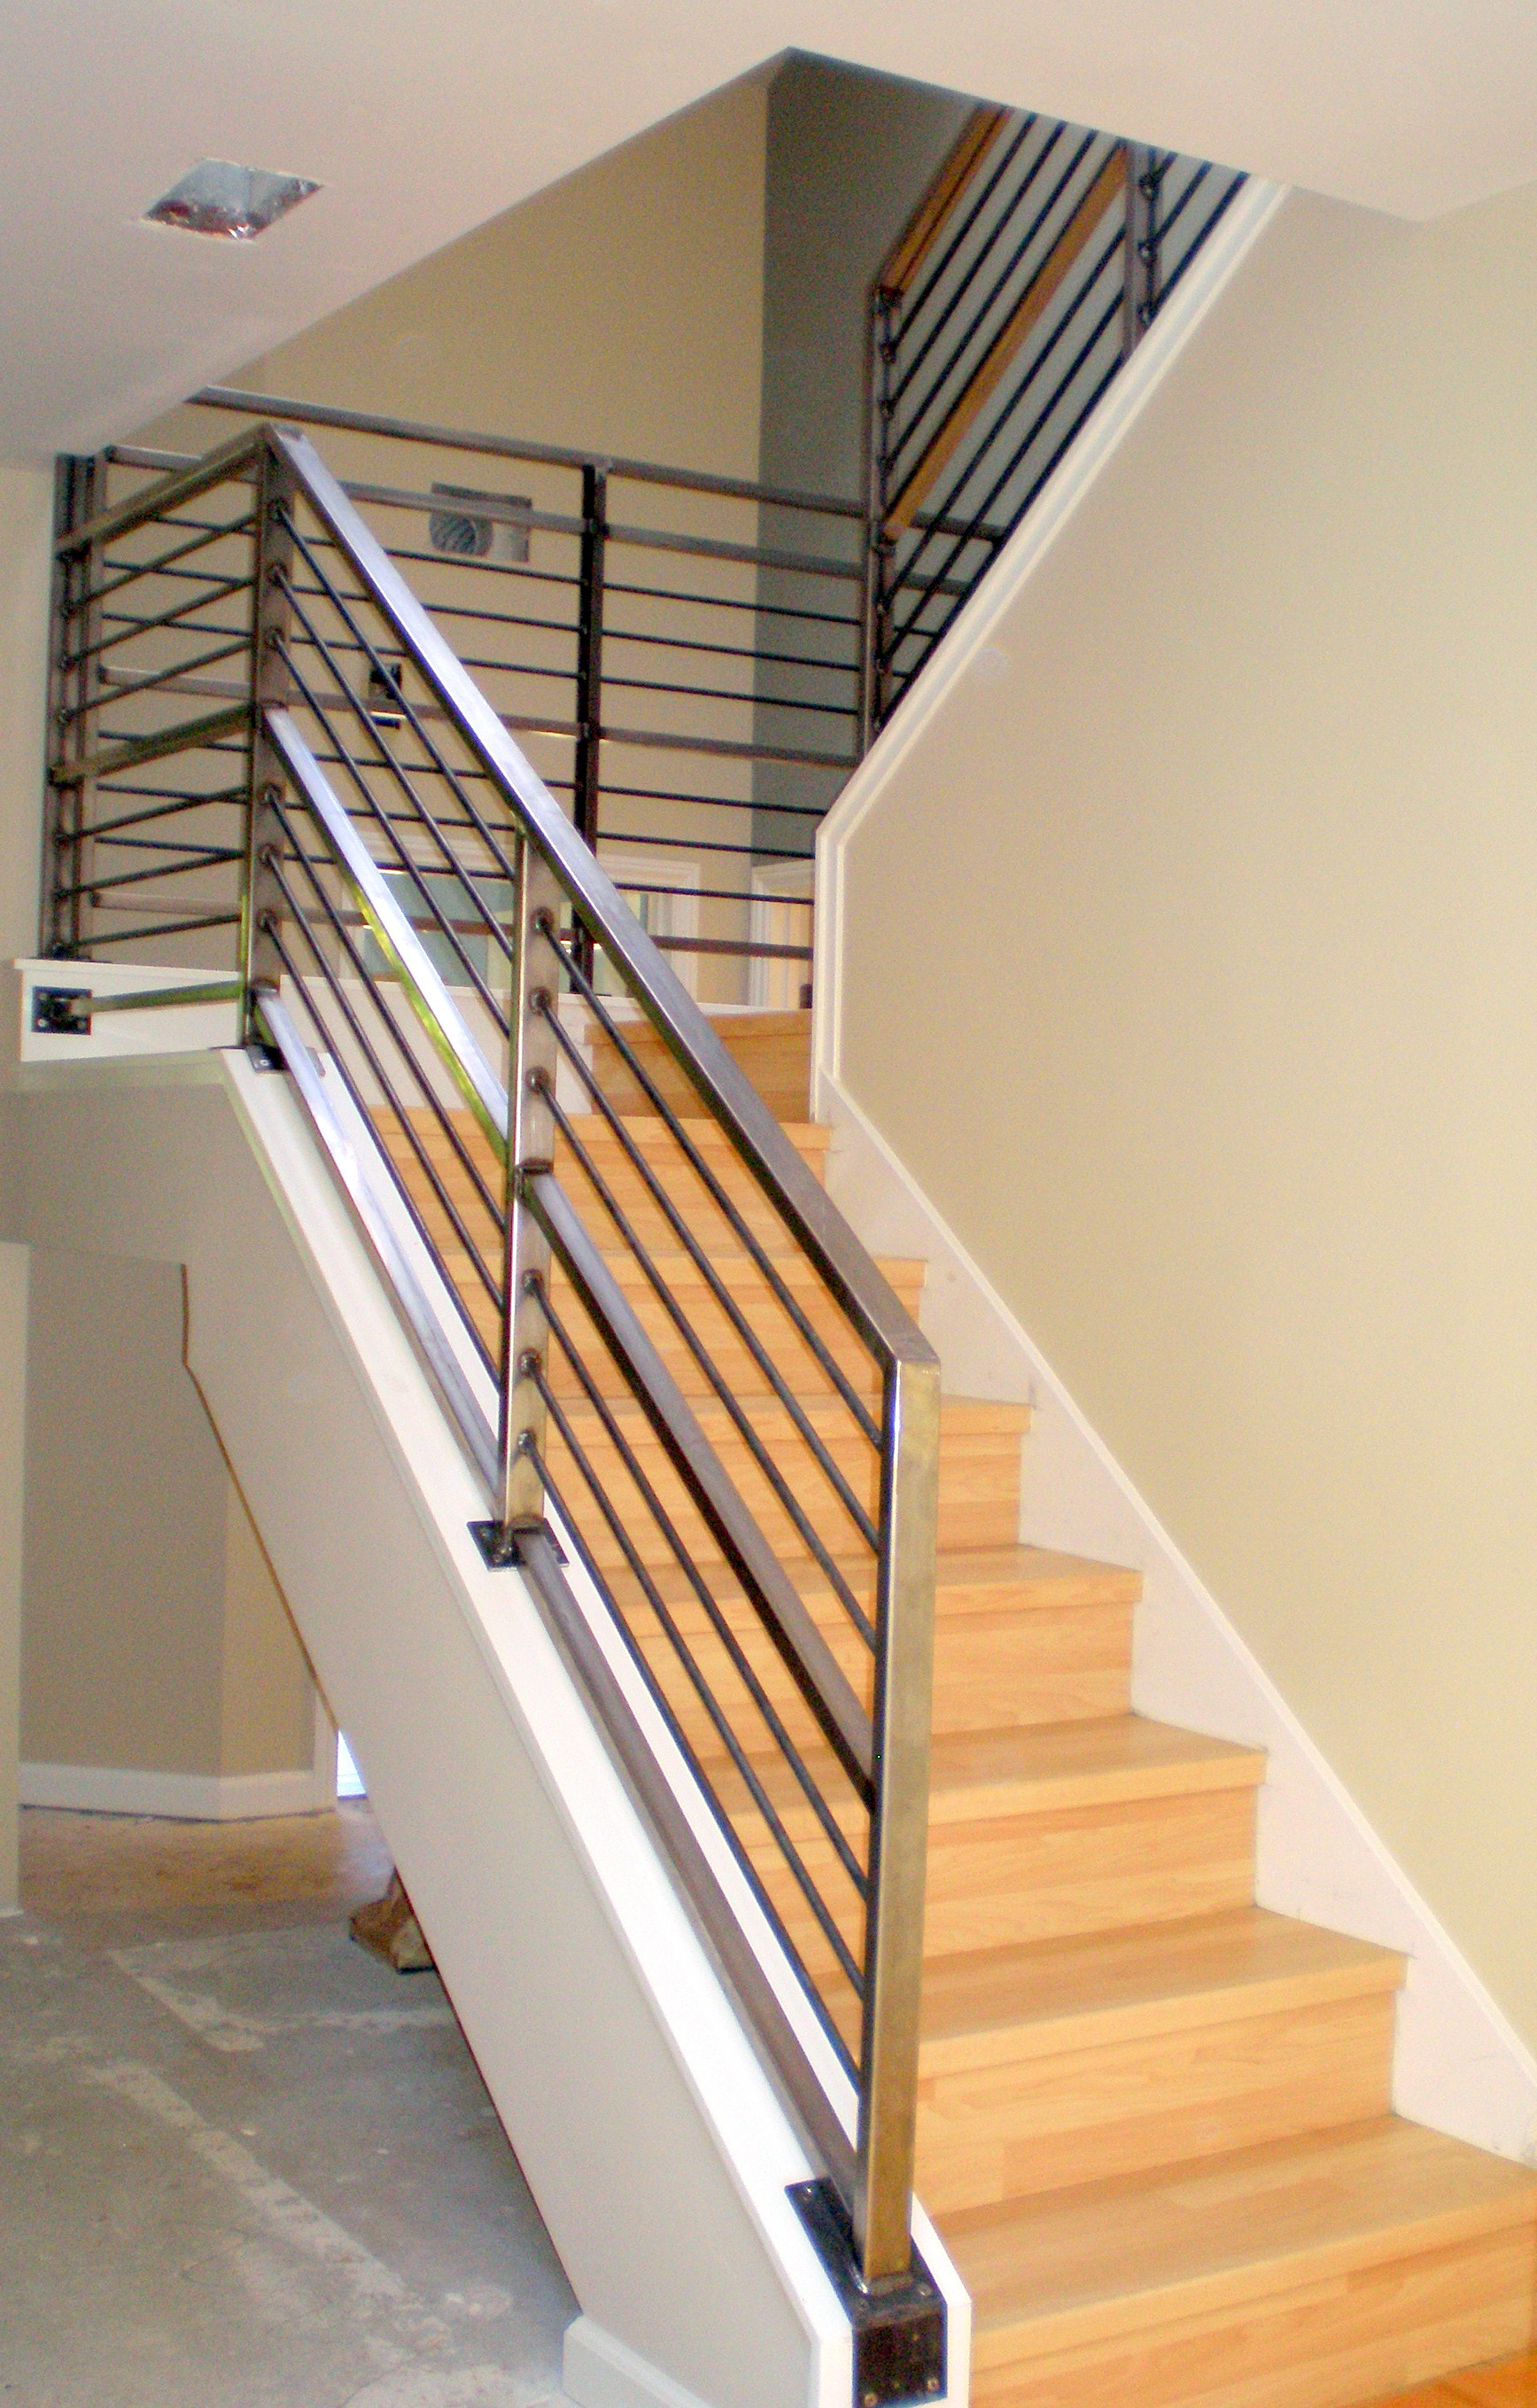 Best ideas about Indoor Stair Railings . Save or Pin Stair Adorable Modern Stair Railings To Inspire Your Own Now.